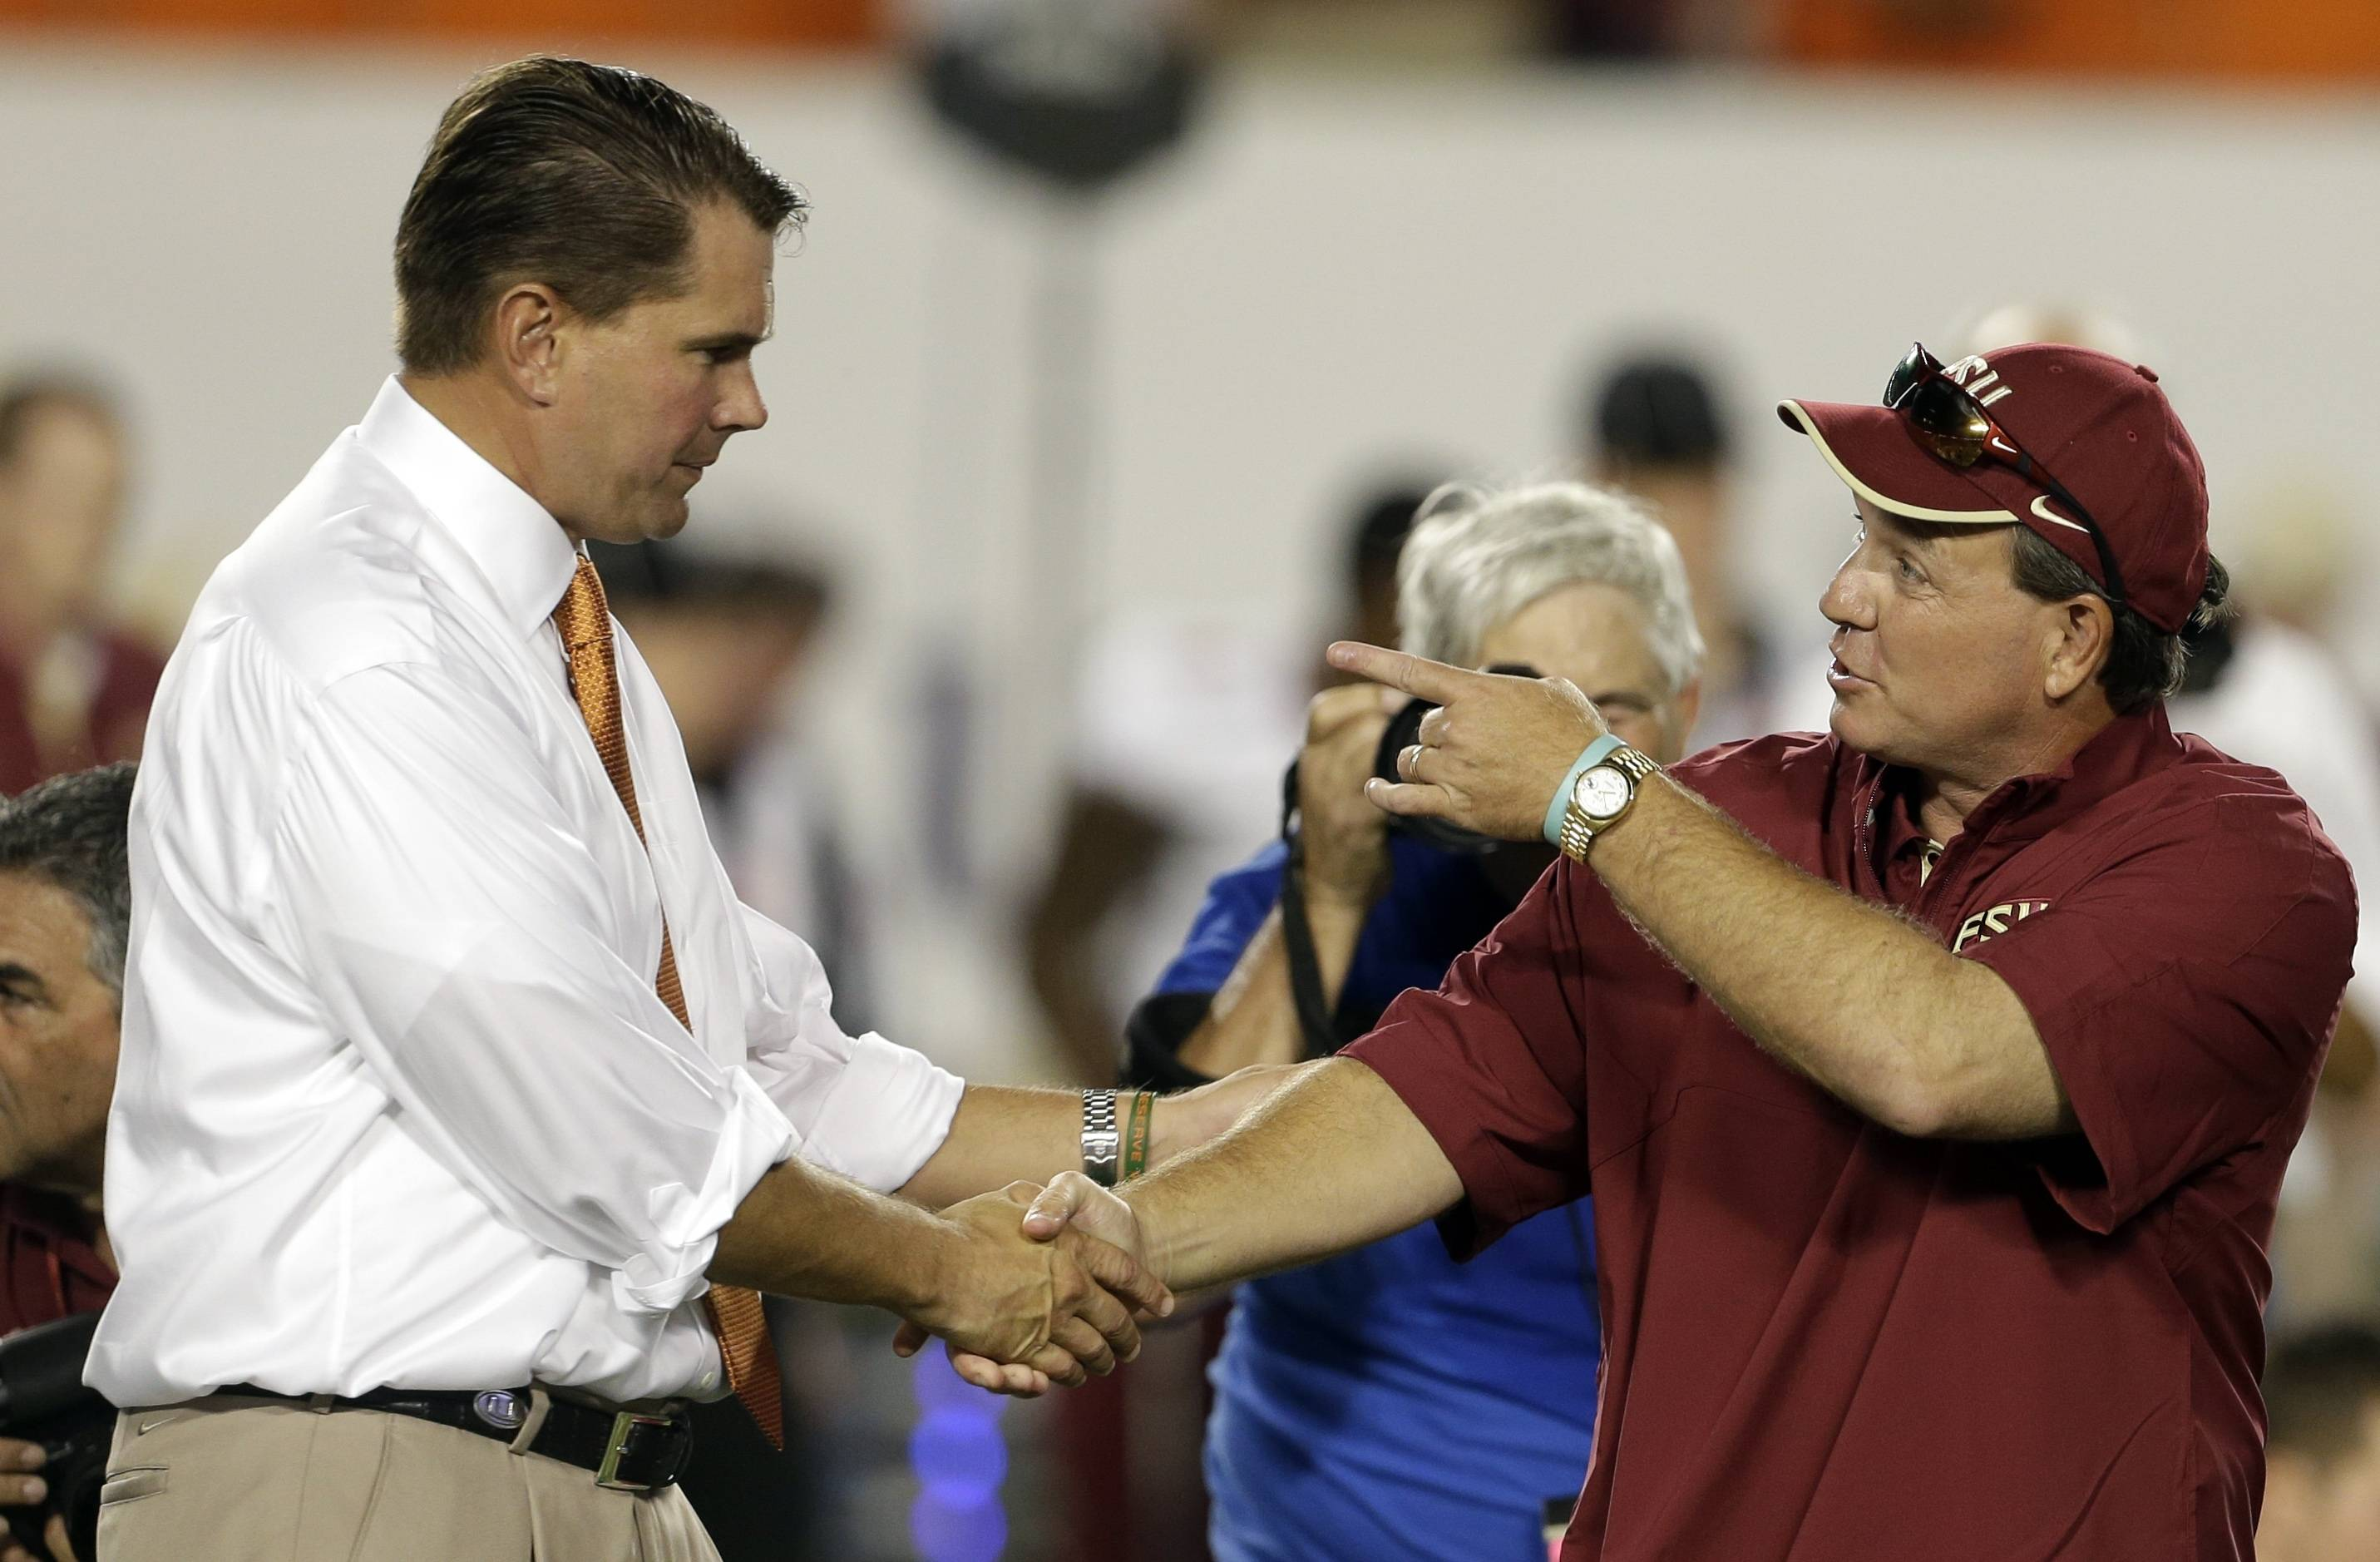 Miami's head coach Al Golden, left, shakes hands with Florida State's head coach Jimbo Fisher, right, before an NCAA college football game, Saturday, Oct. 20, 2012, in Miami. (AP Photo/Lynne Sladky)